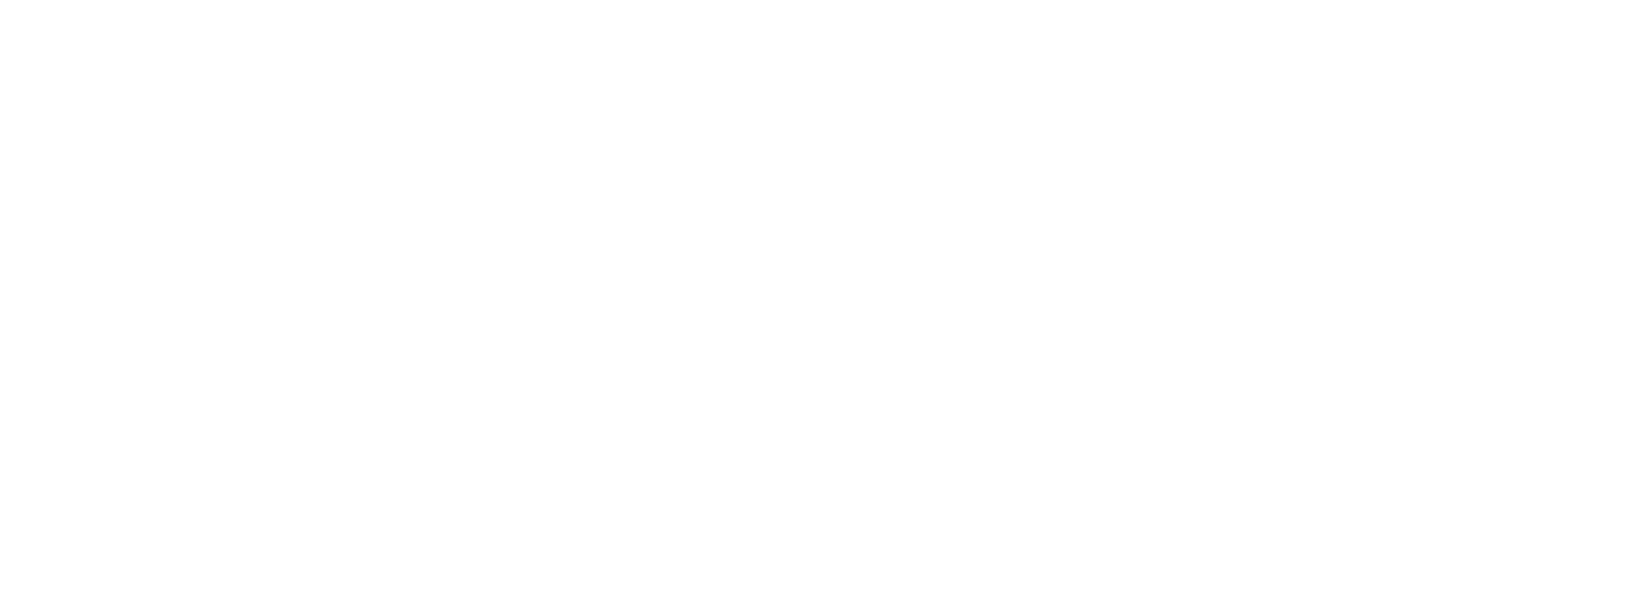 Deposit £50, Play with £75 on Table 3